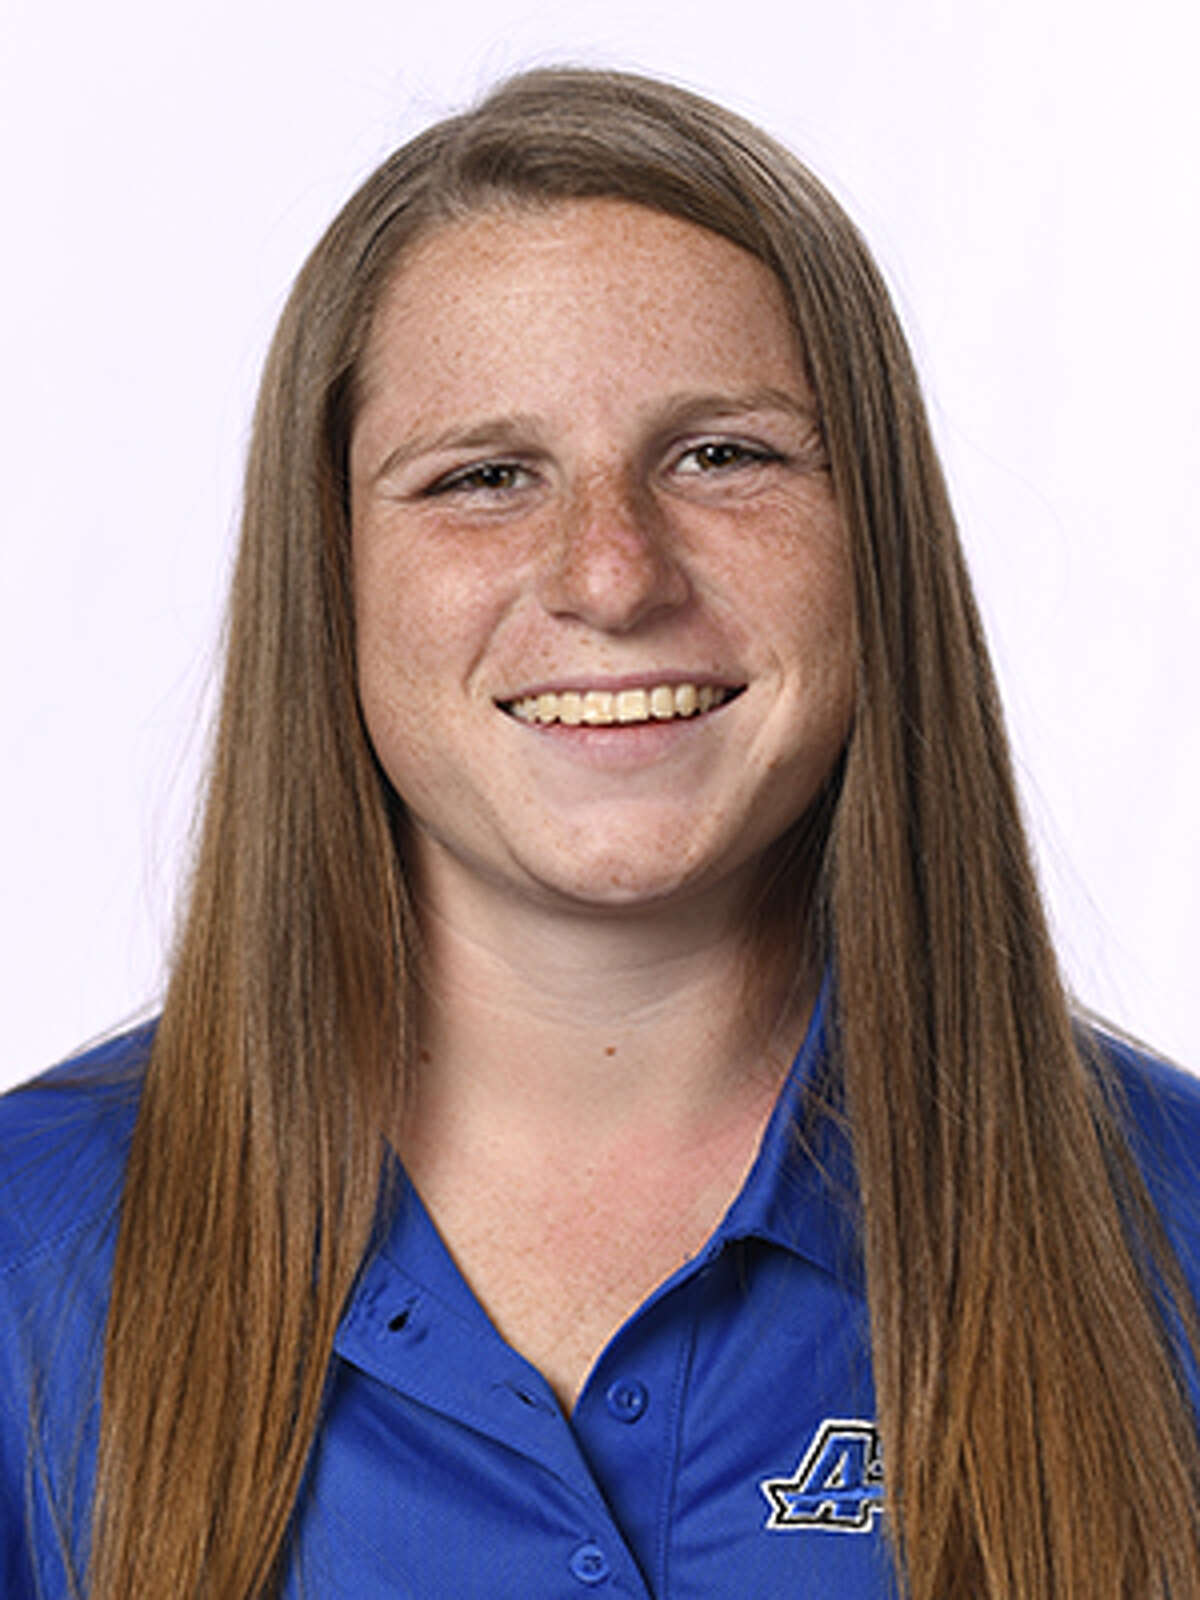 Kailyn Hart, a senior on the Assumption College lacrosse team, is a Shaker High grad. (Assumption College photo)